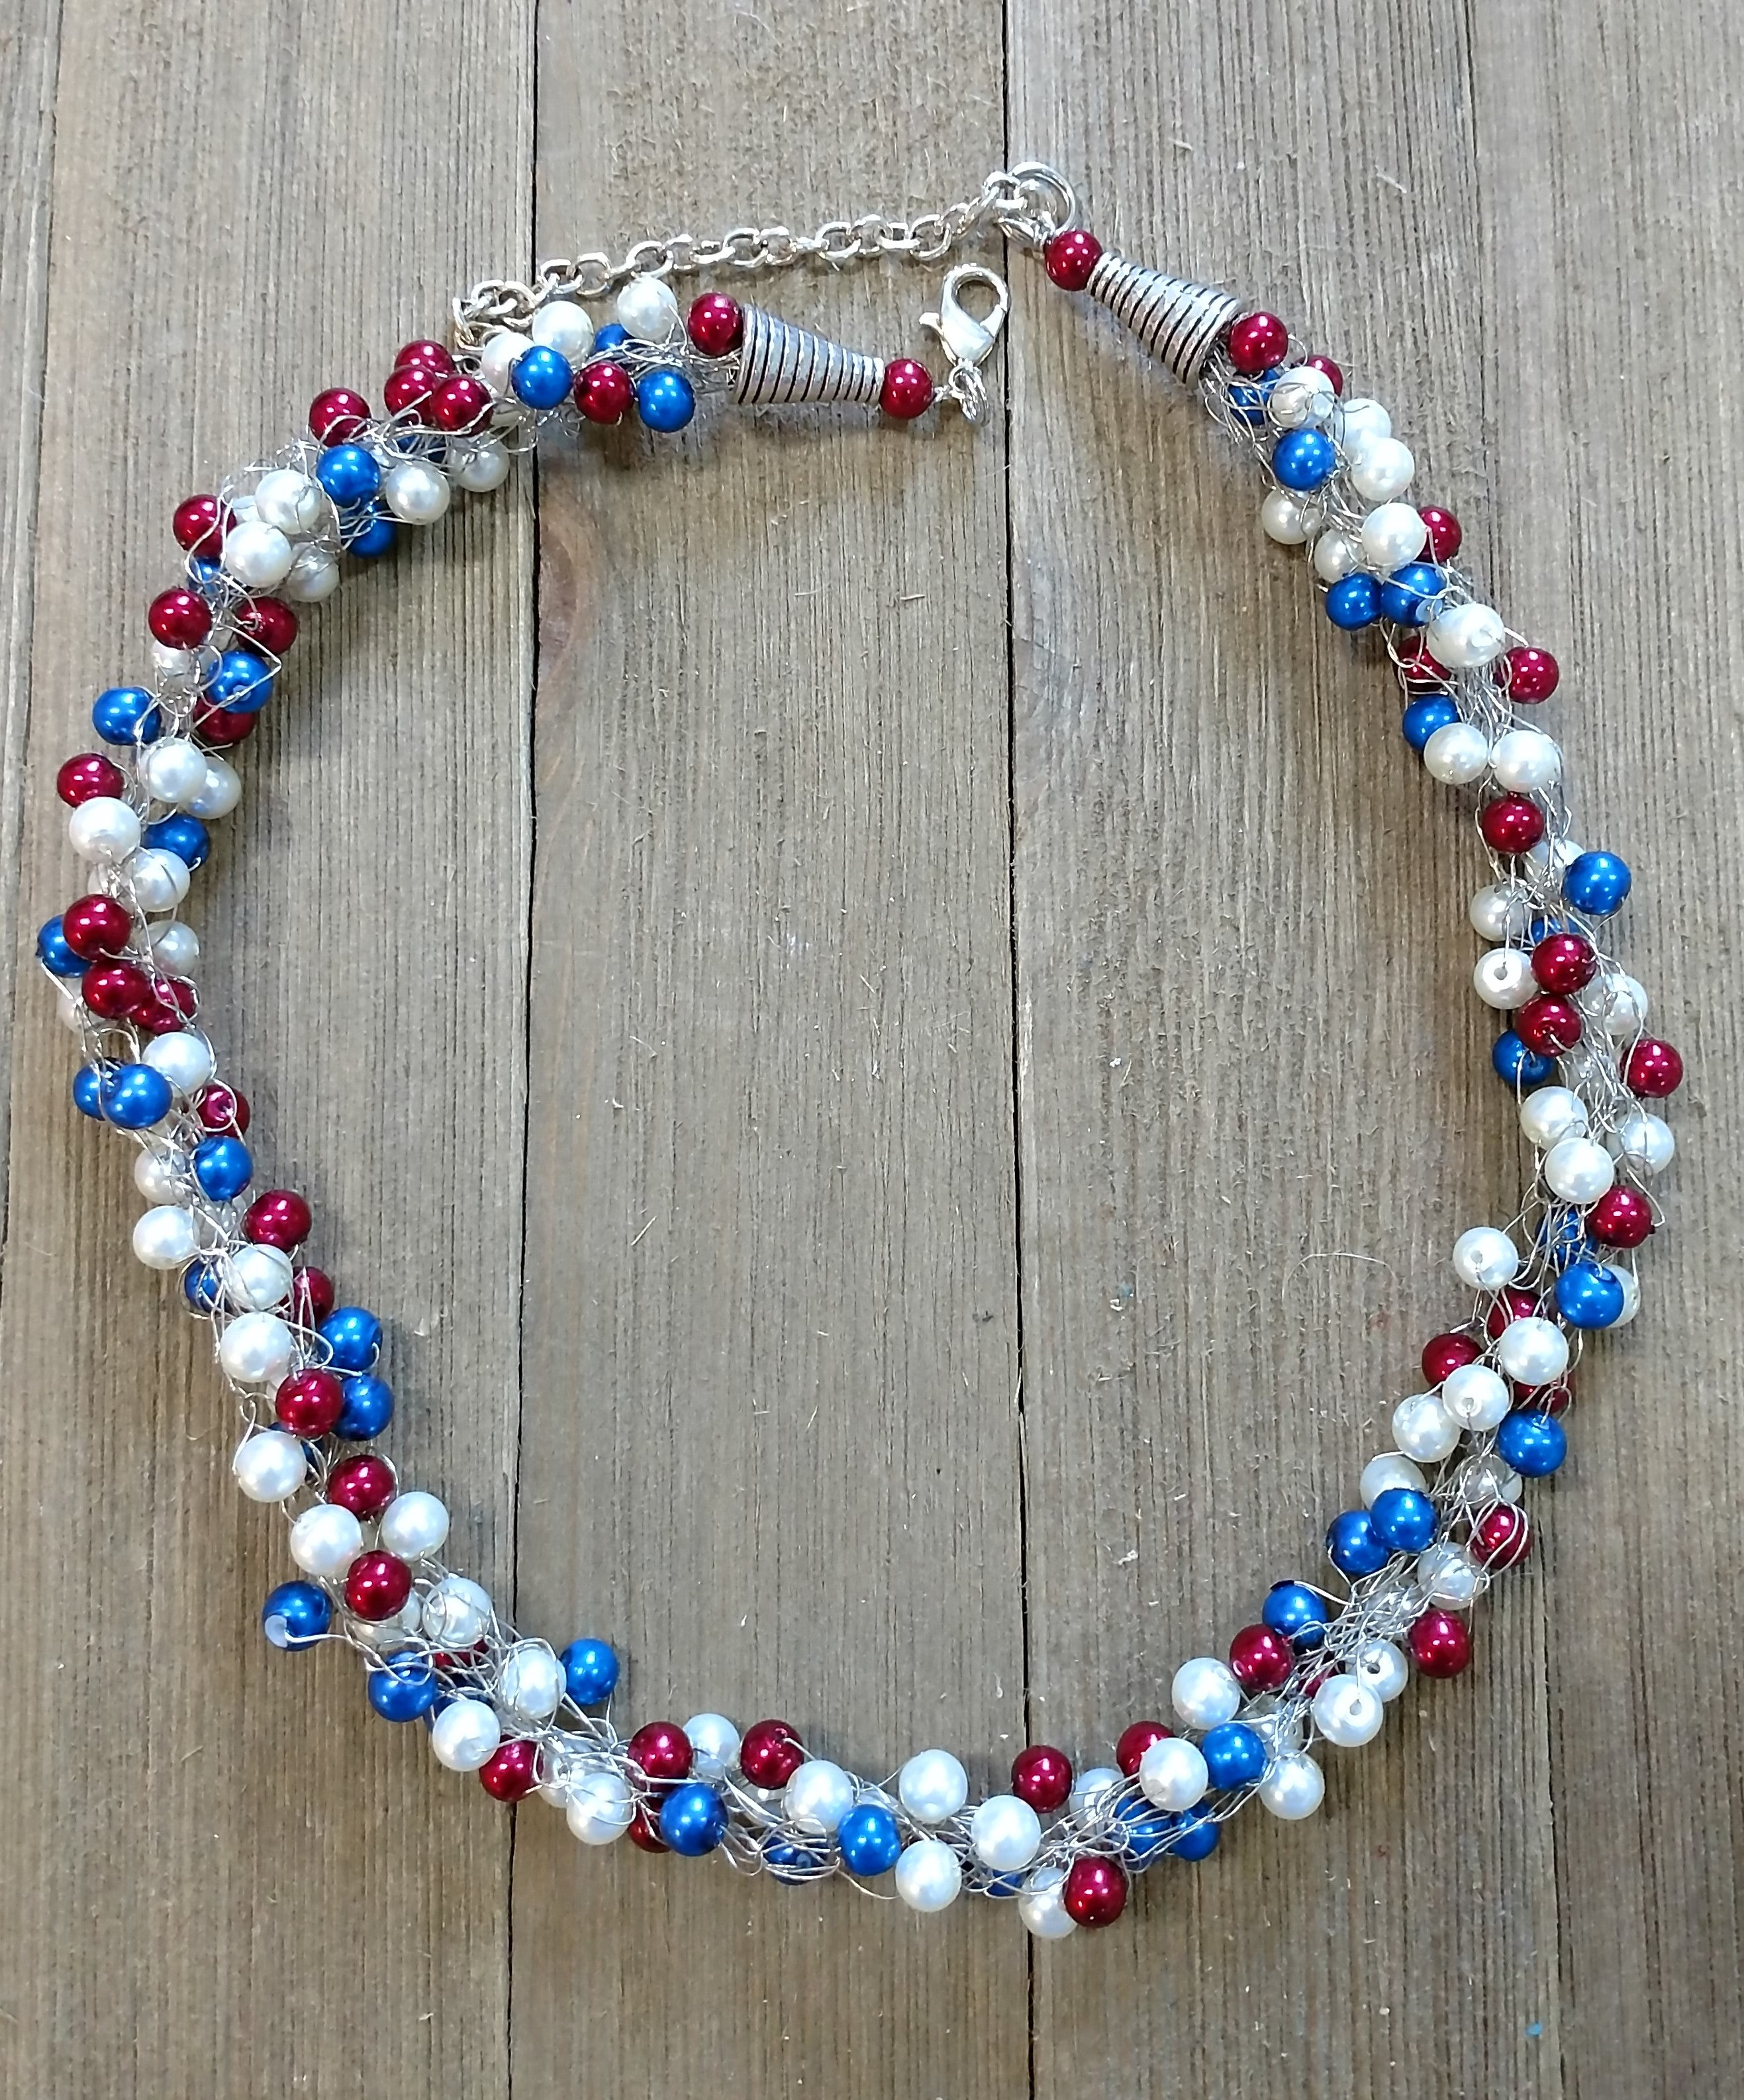 Pat Whitlow- Patriotic Necklace